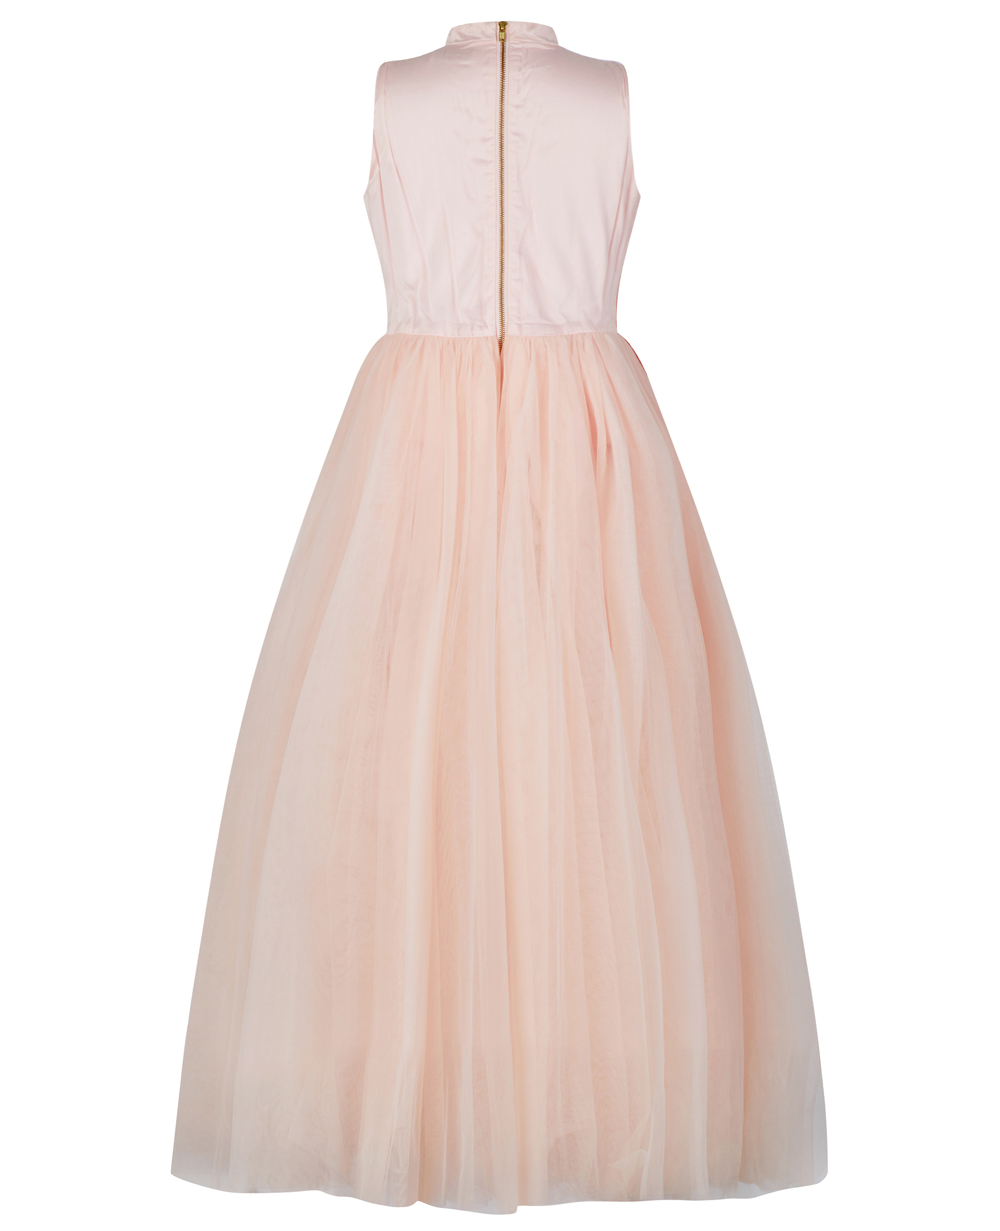 Pink Sash Tulle Dress